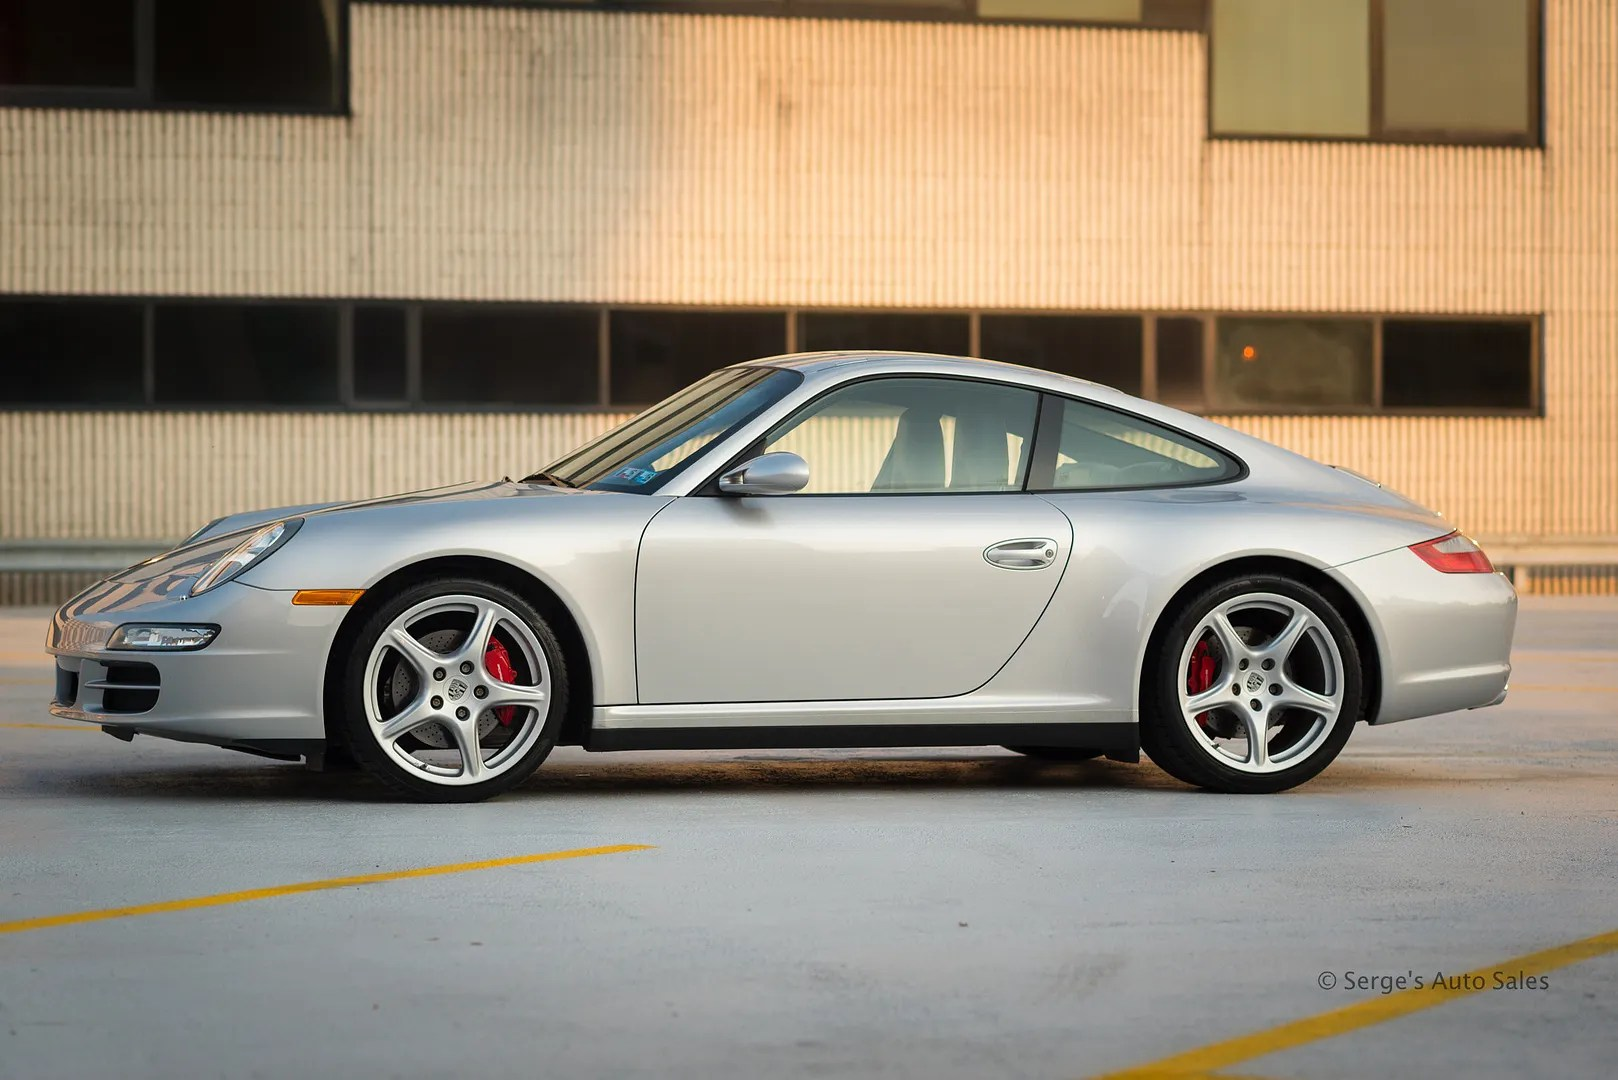 photo Serges-auto-sales-porsche-911-for-sale-scranton-pennsylvania-2_zpsyknzlmsb.jpg